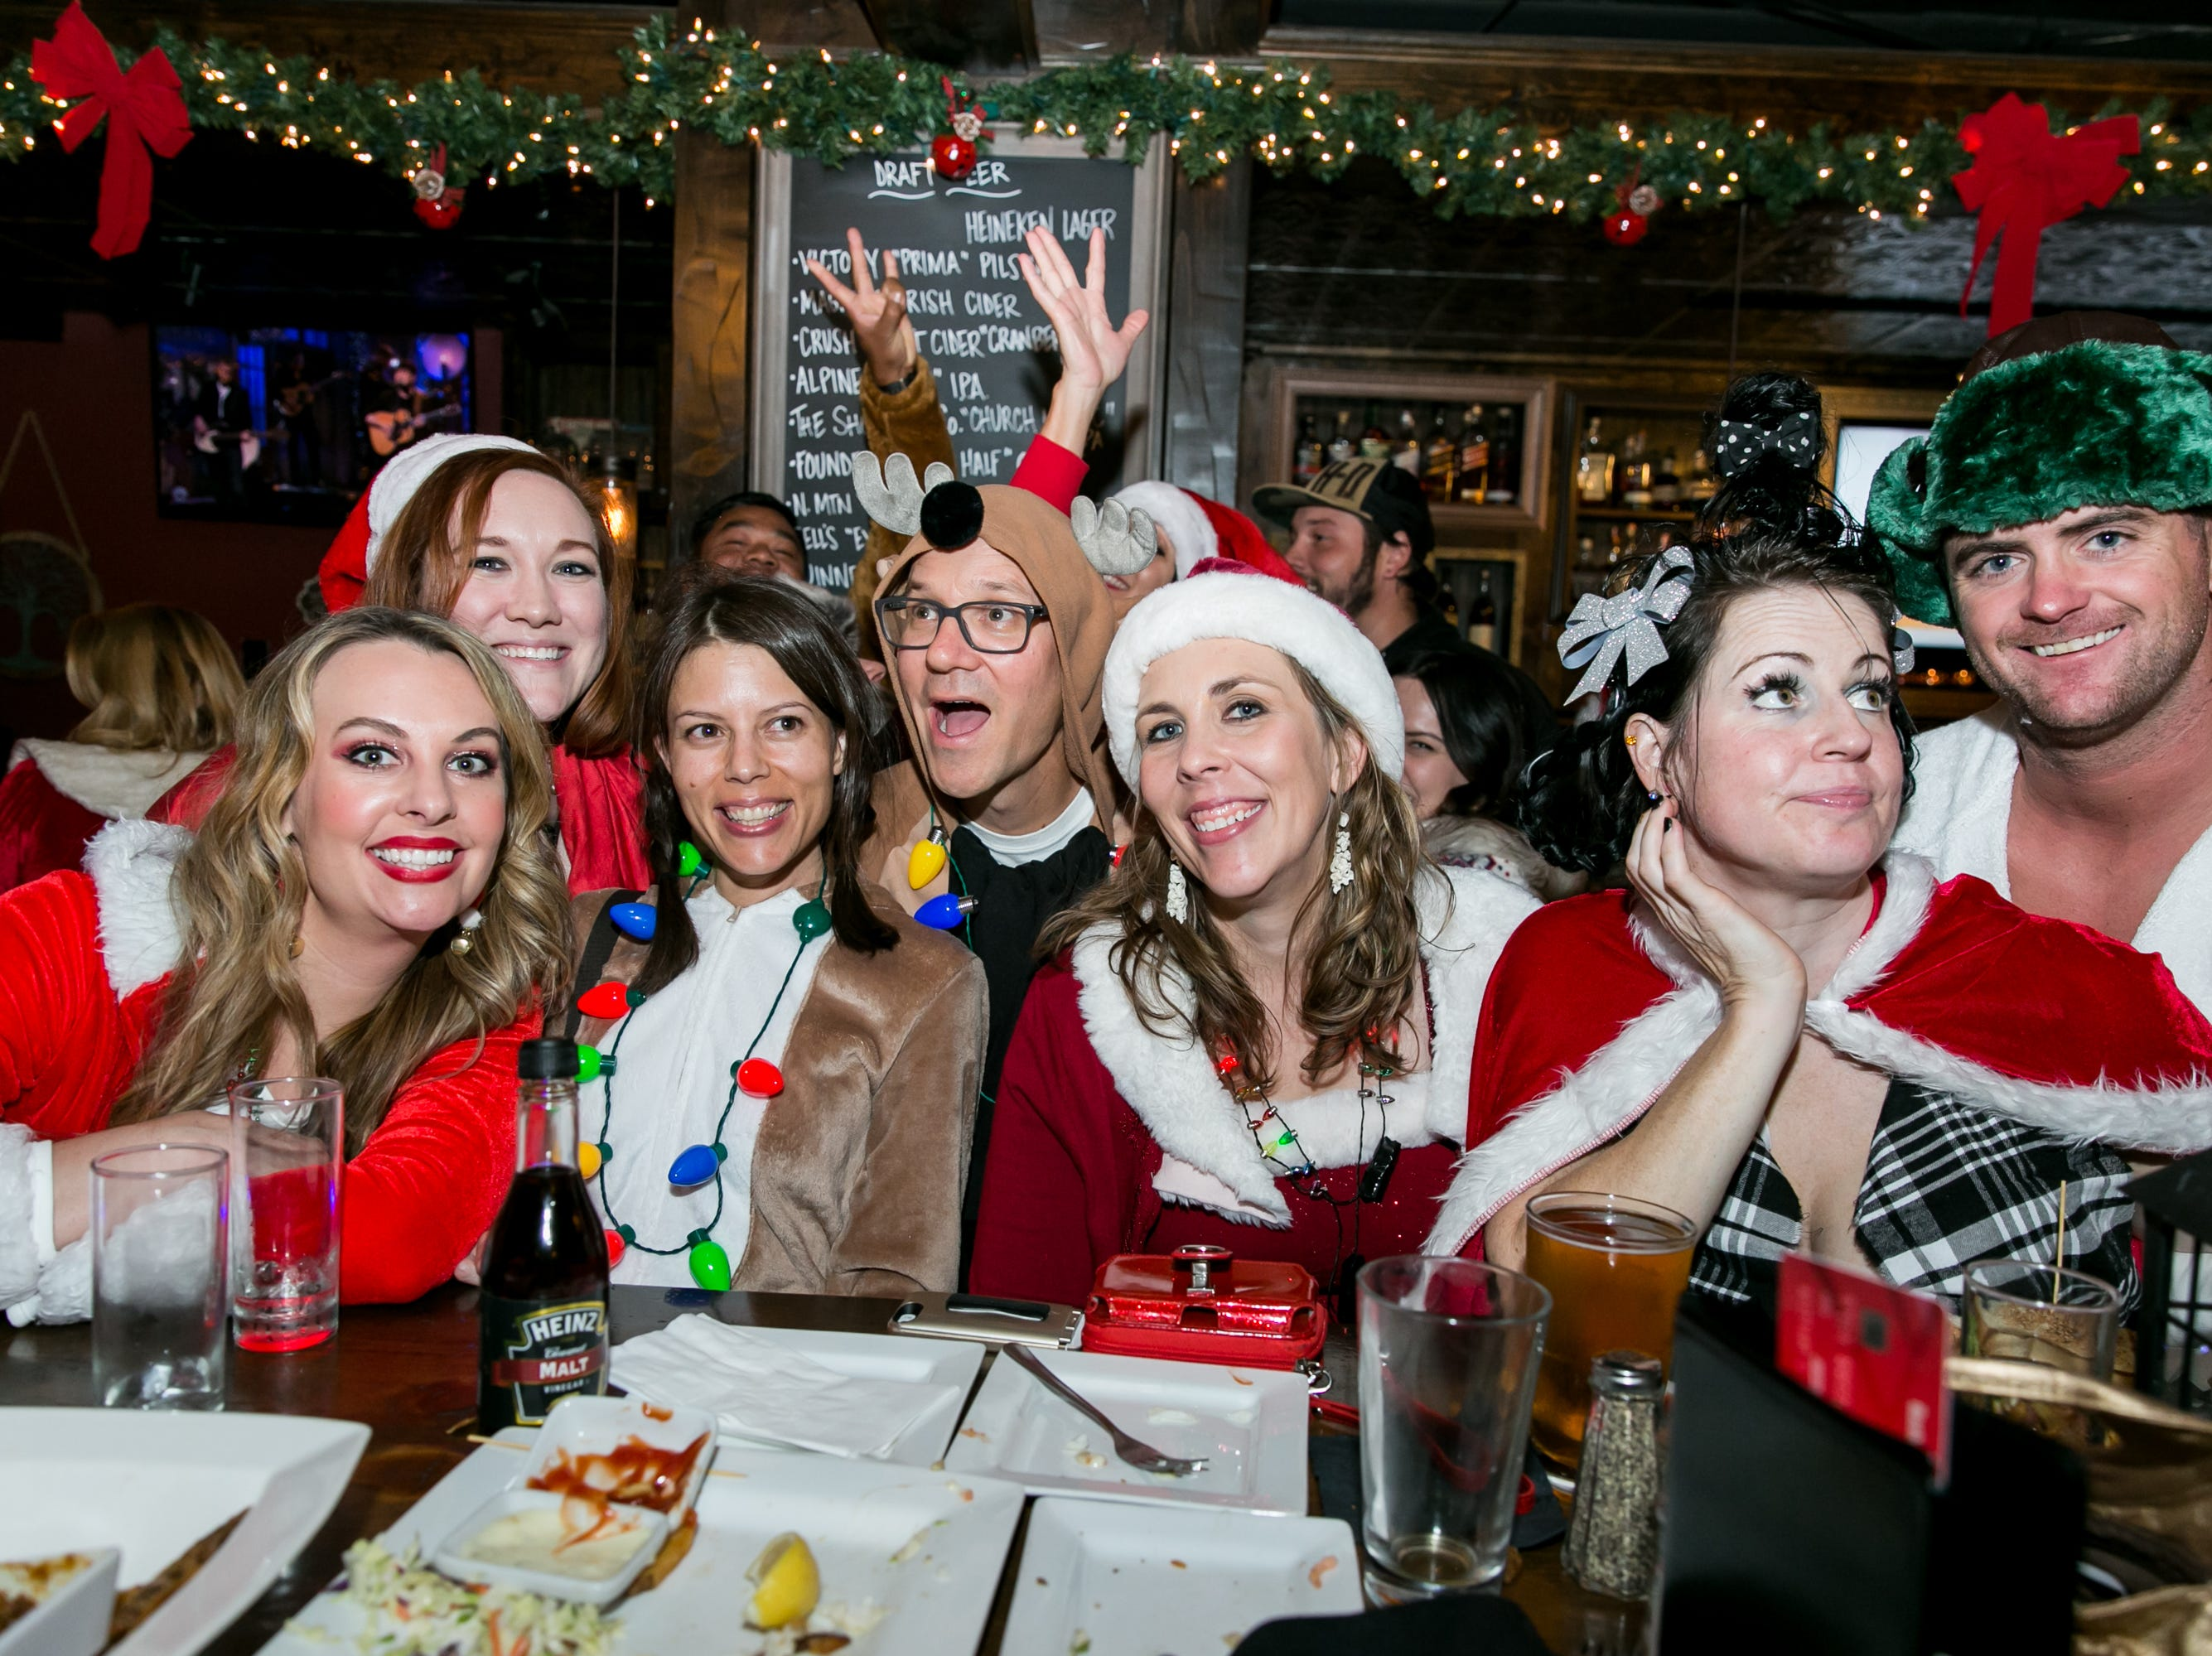 This group looked awesome at The Kettle Black during Santarchy on Saturday, December 8, 2018.